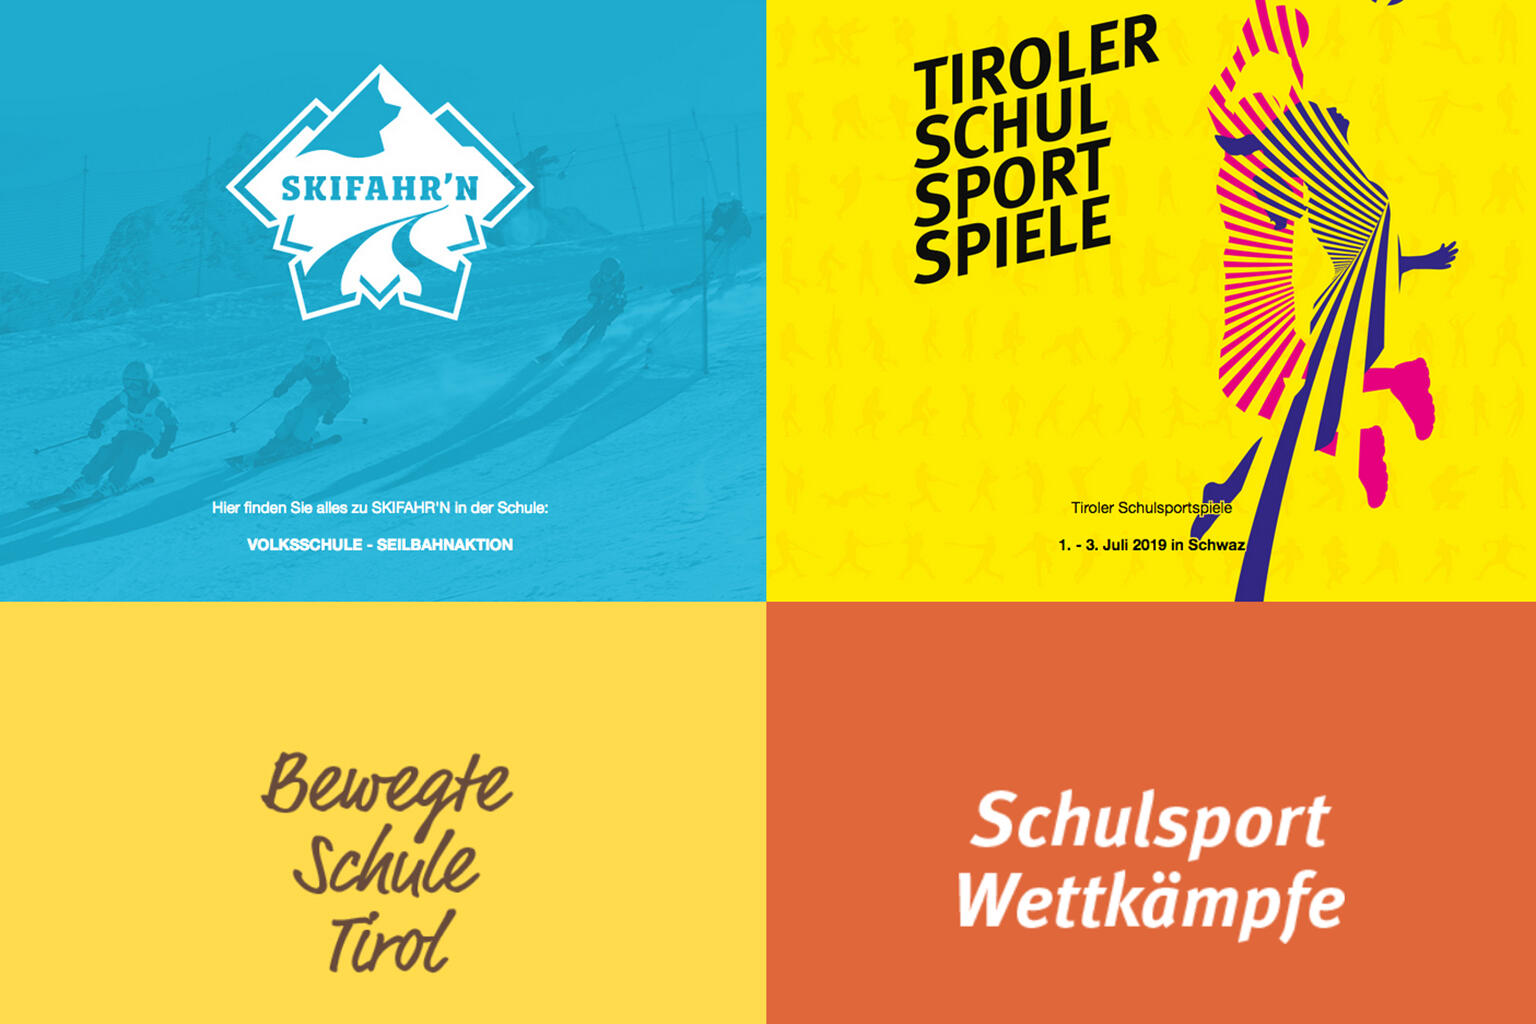 tirolerschulsport_TIROLER VERSICHERUNG_tirolerjugendclub